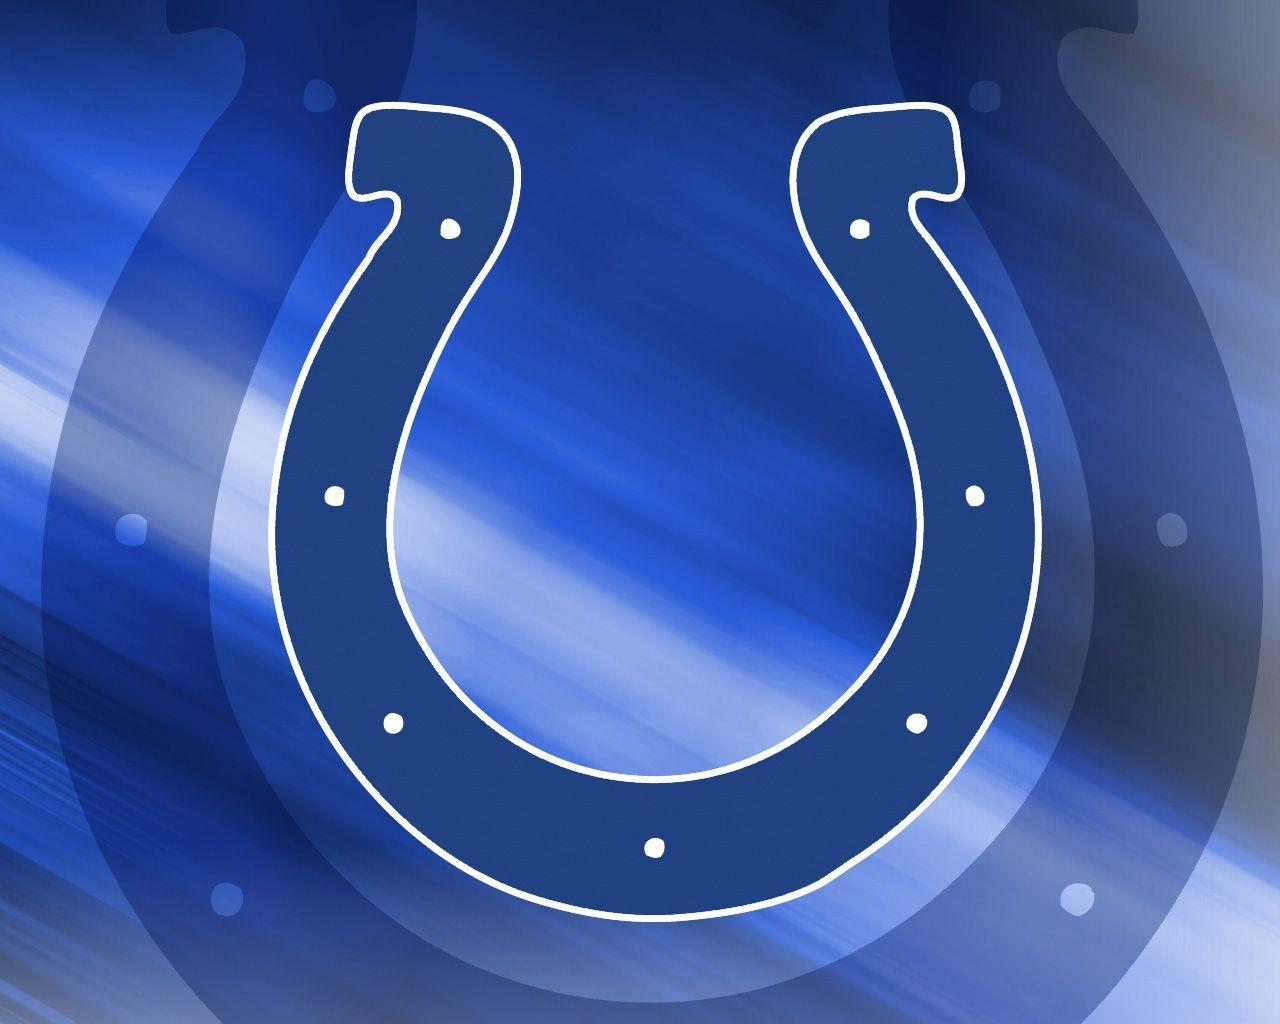 Nfl Indianapolis Colts Team Wallpapers Free HD Backgrounds Image